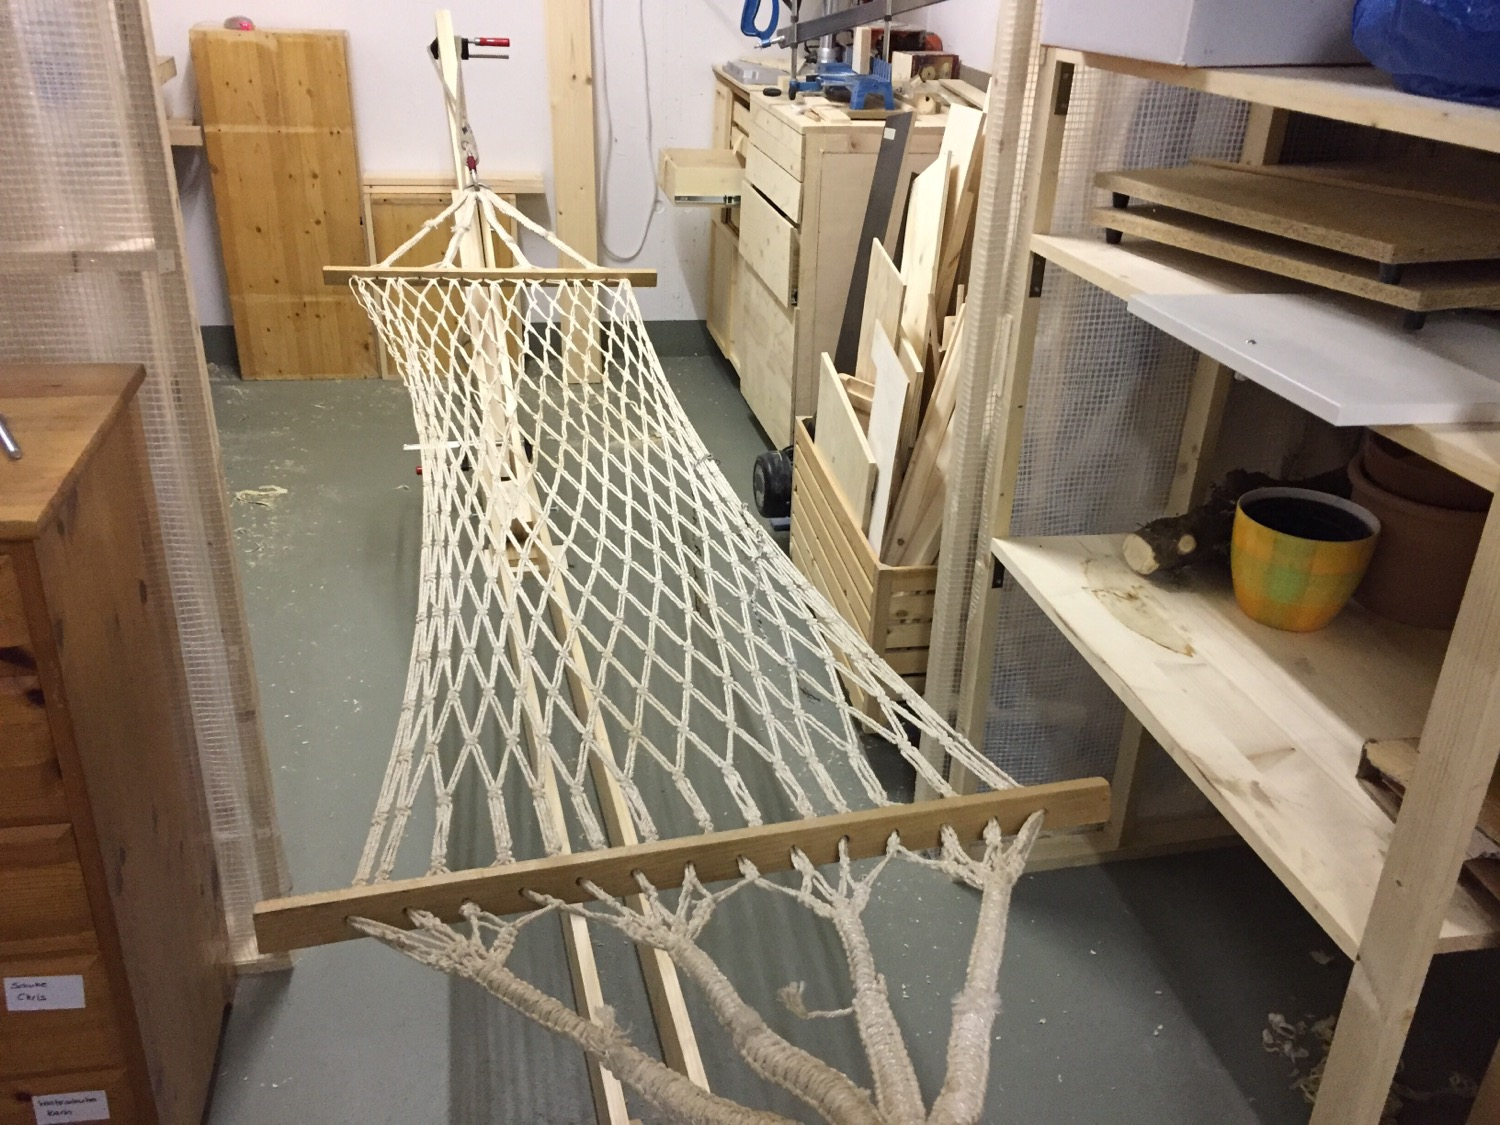 Working on my hammock stand. Not quite finished but it works.